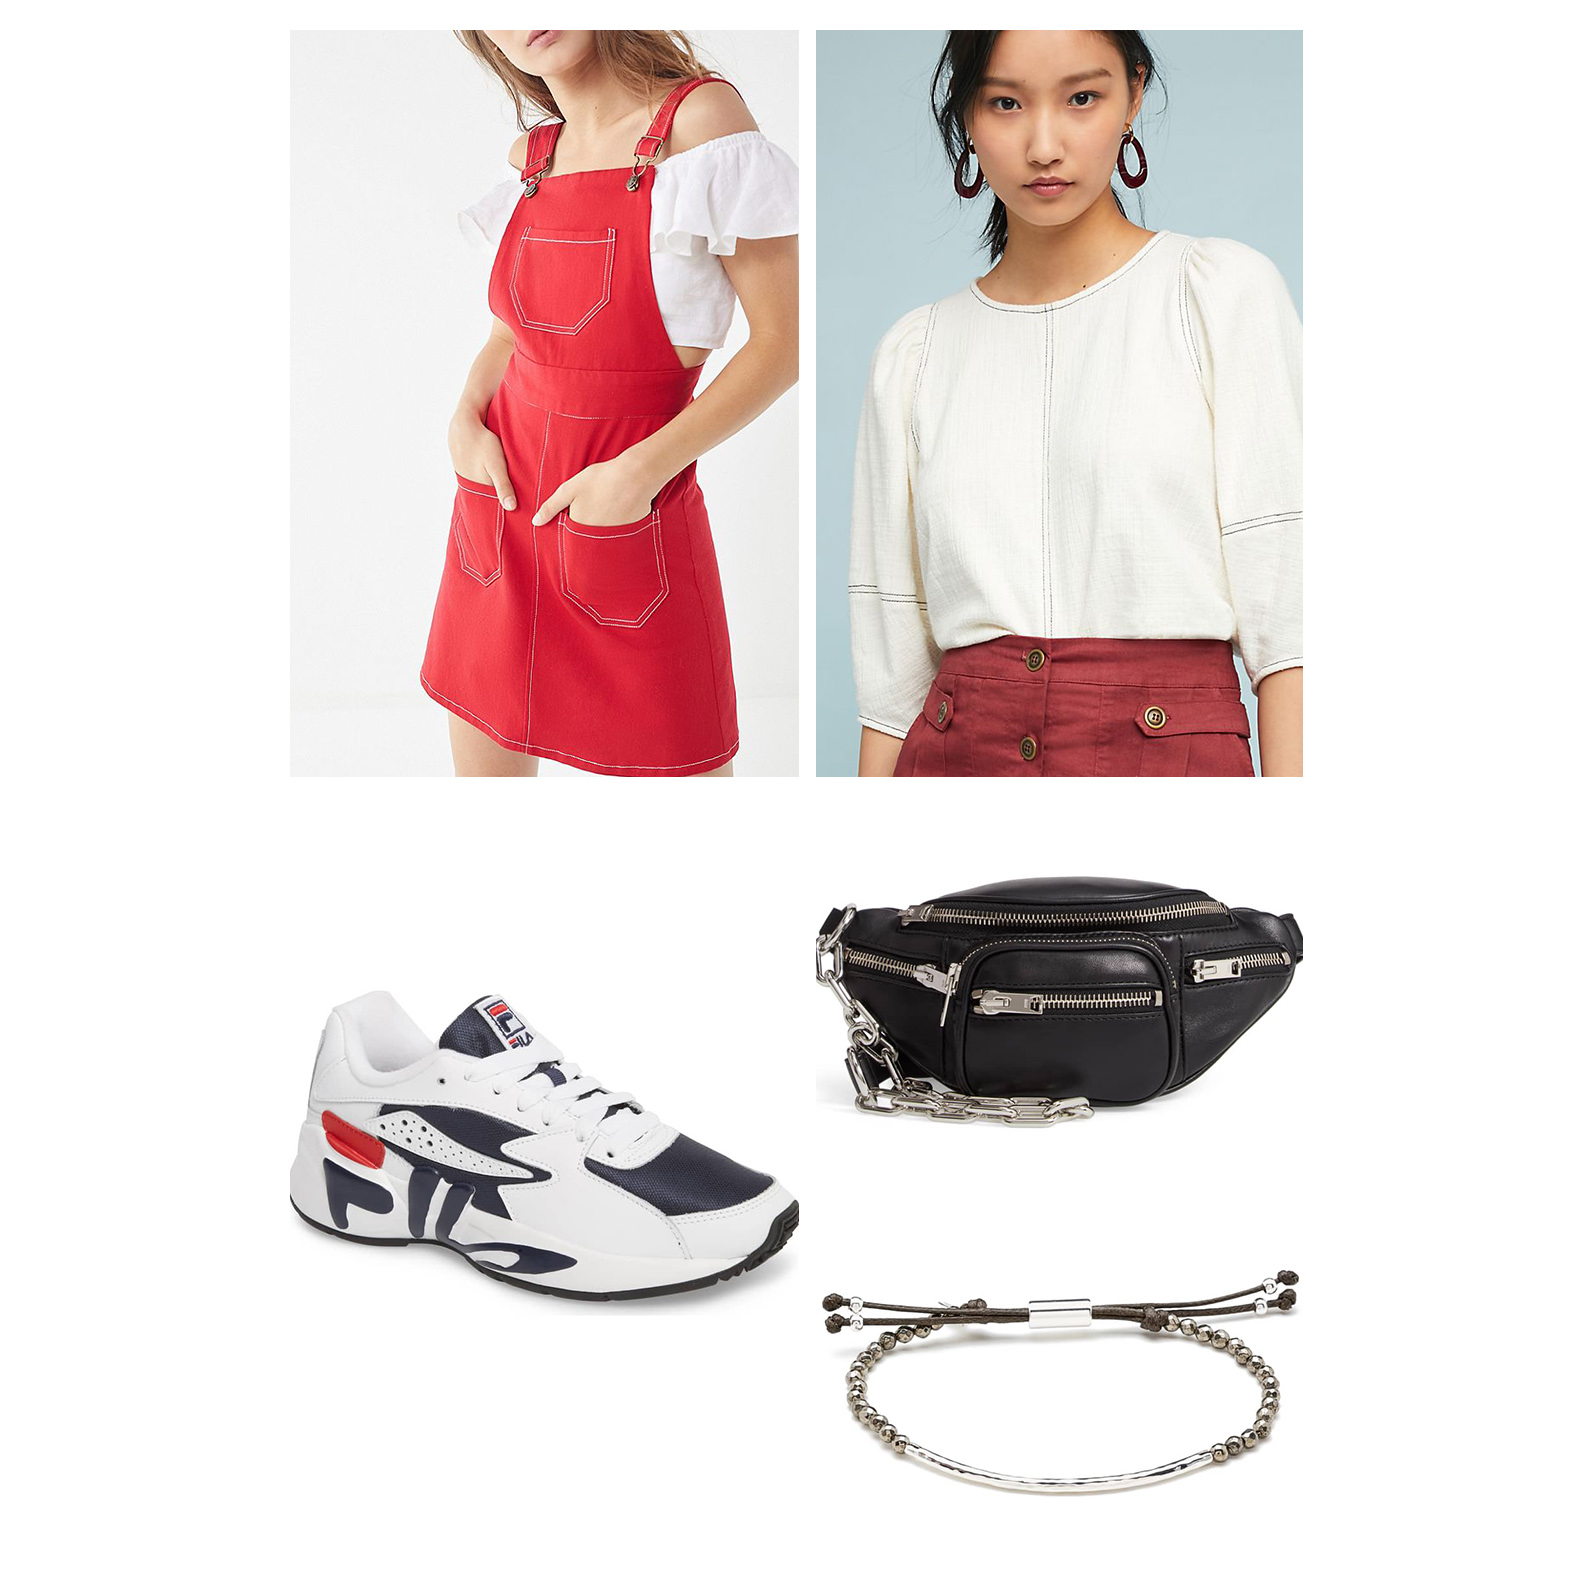 Fall weekend casual outfit idea - red jumper dress, white blouse, white & black sneakers, belt bag, and bead bracelet!